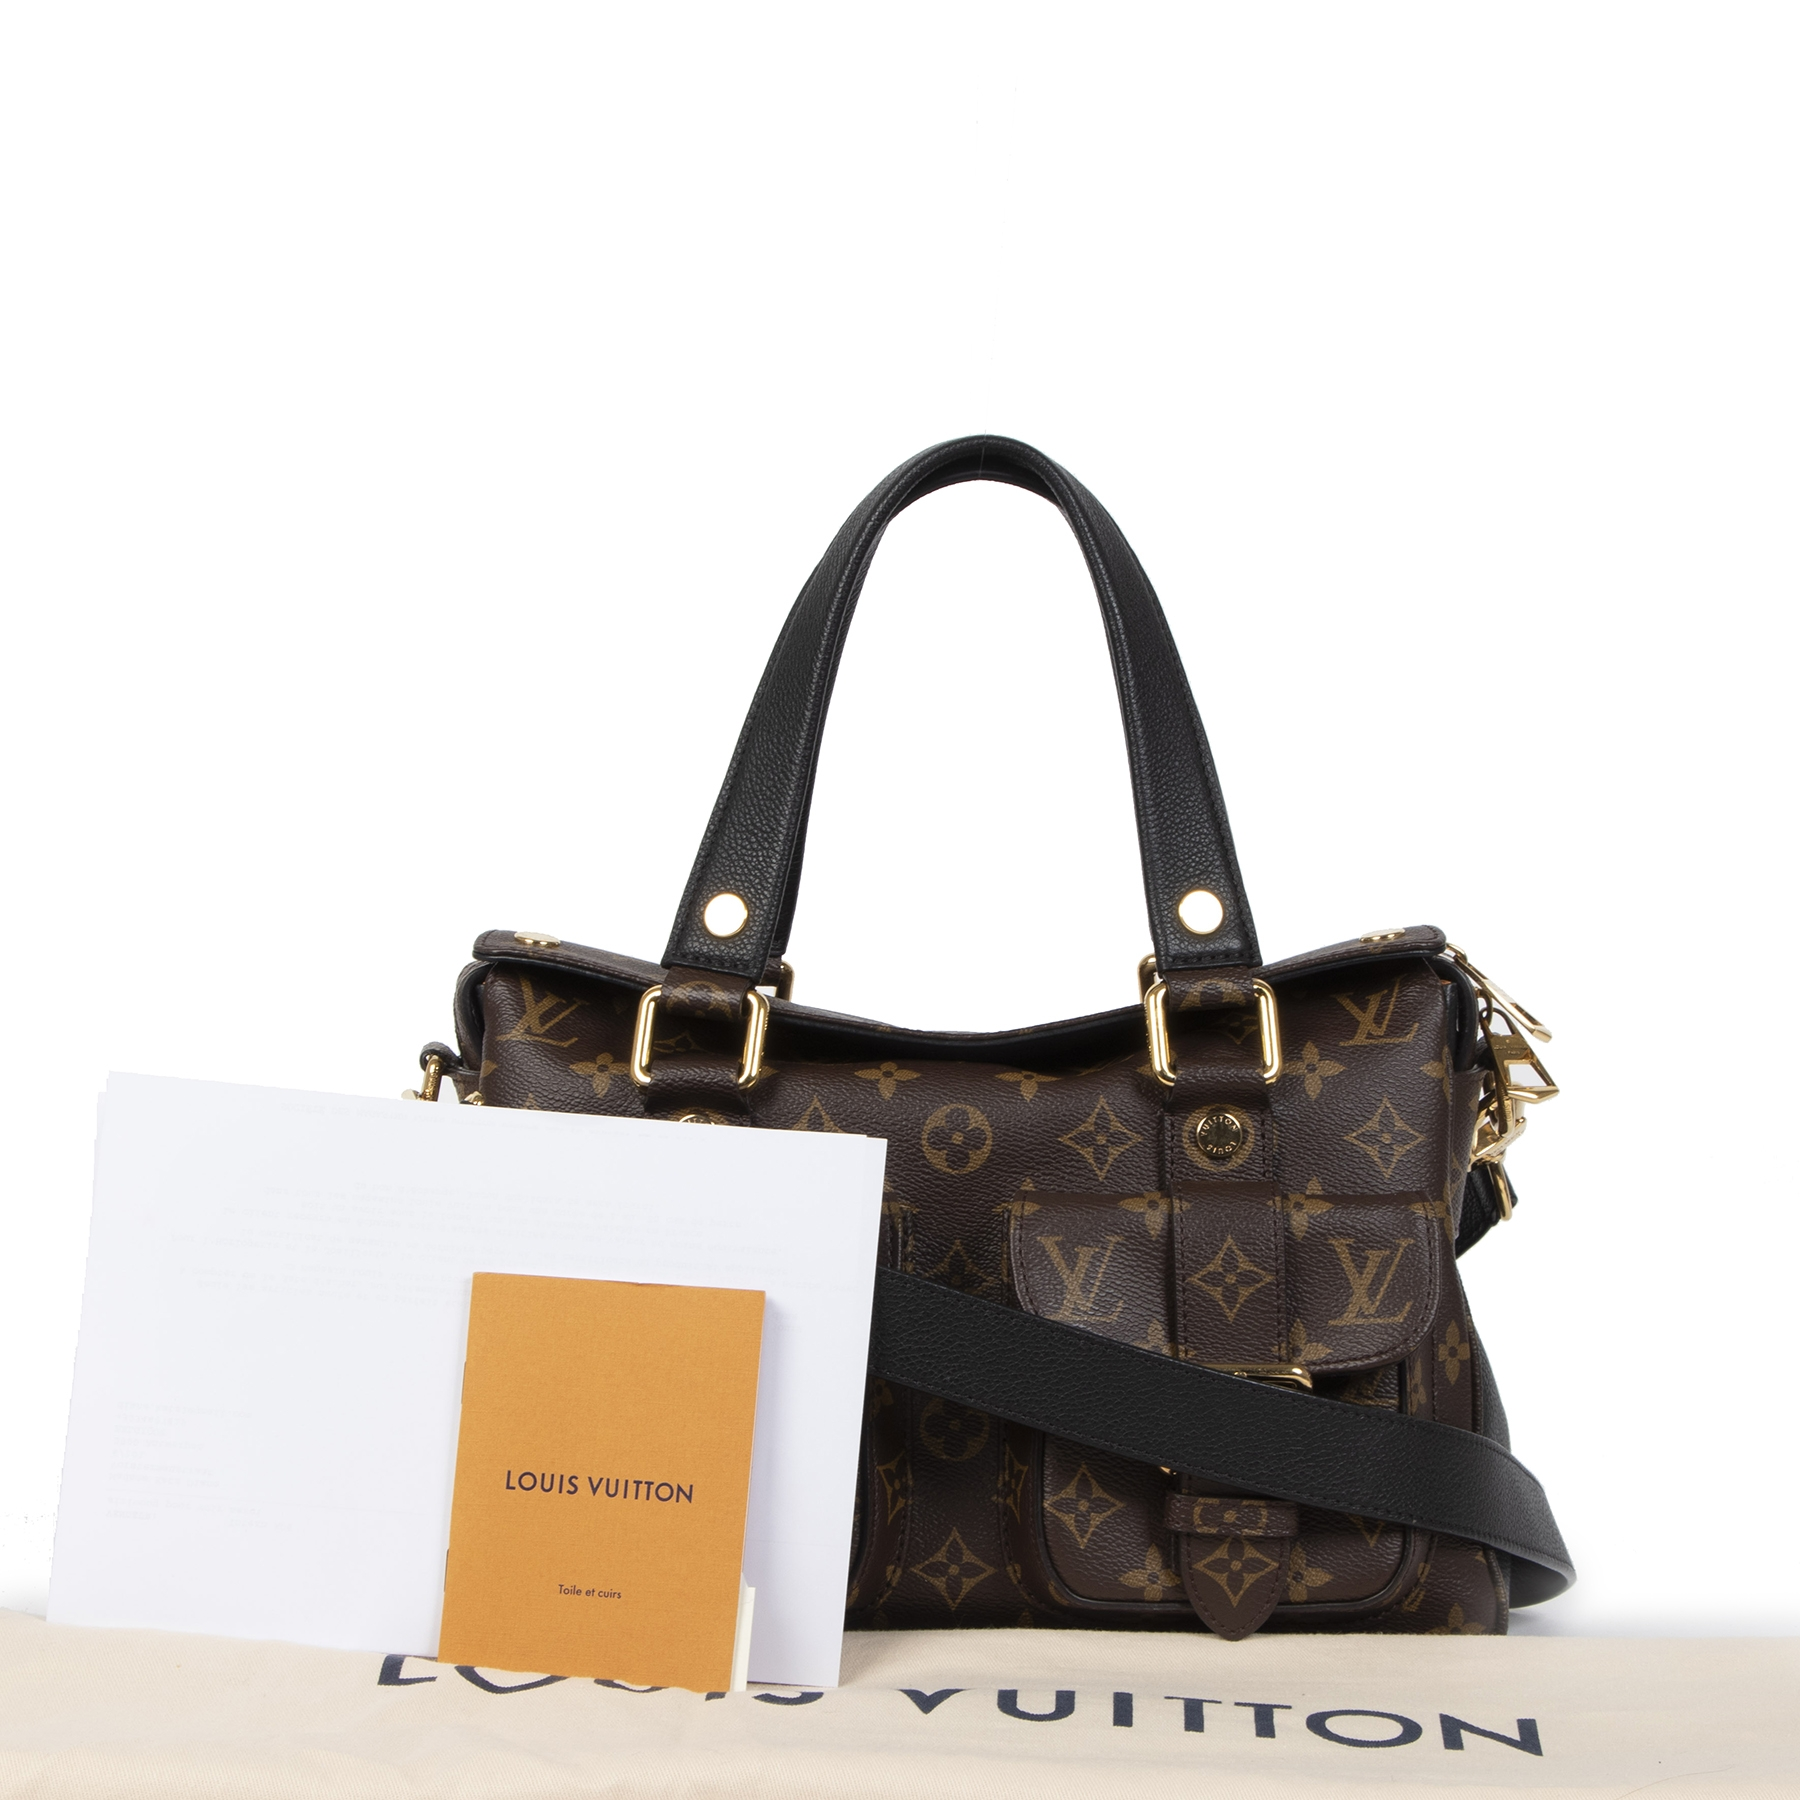 Authentique seconde-main vintage Louis Vuitton Monogram Manhattan Shoulder Bag achète en ligne webshop LablelLOV